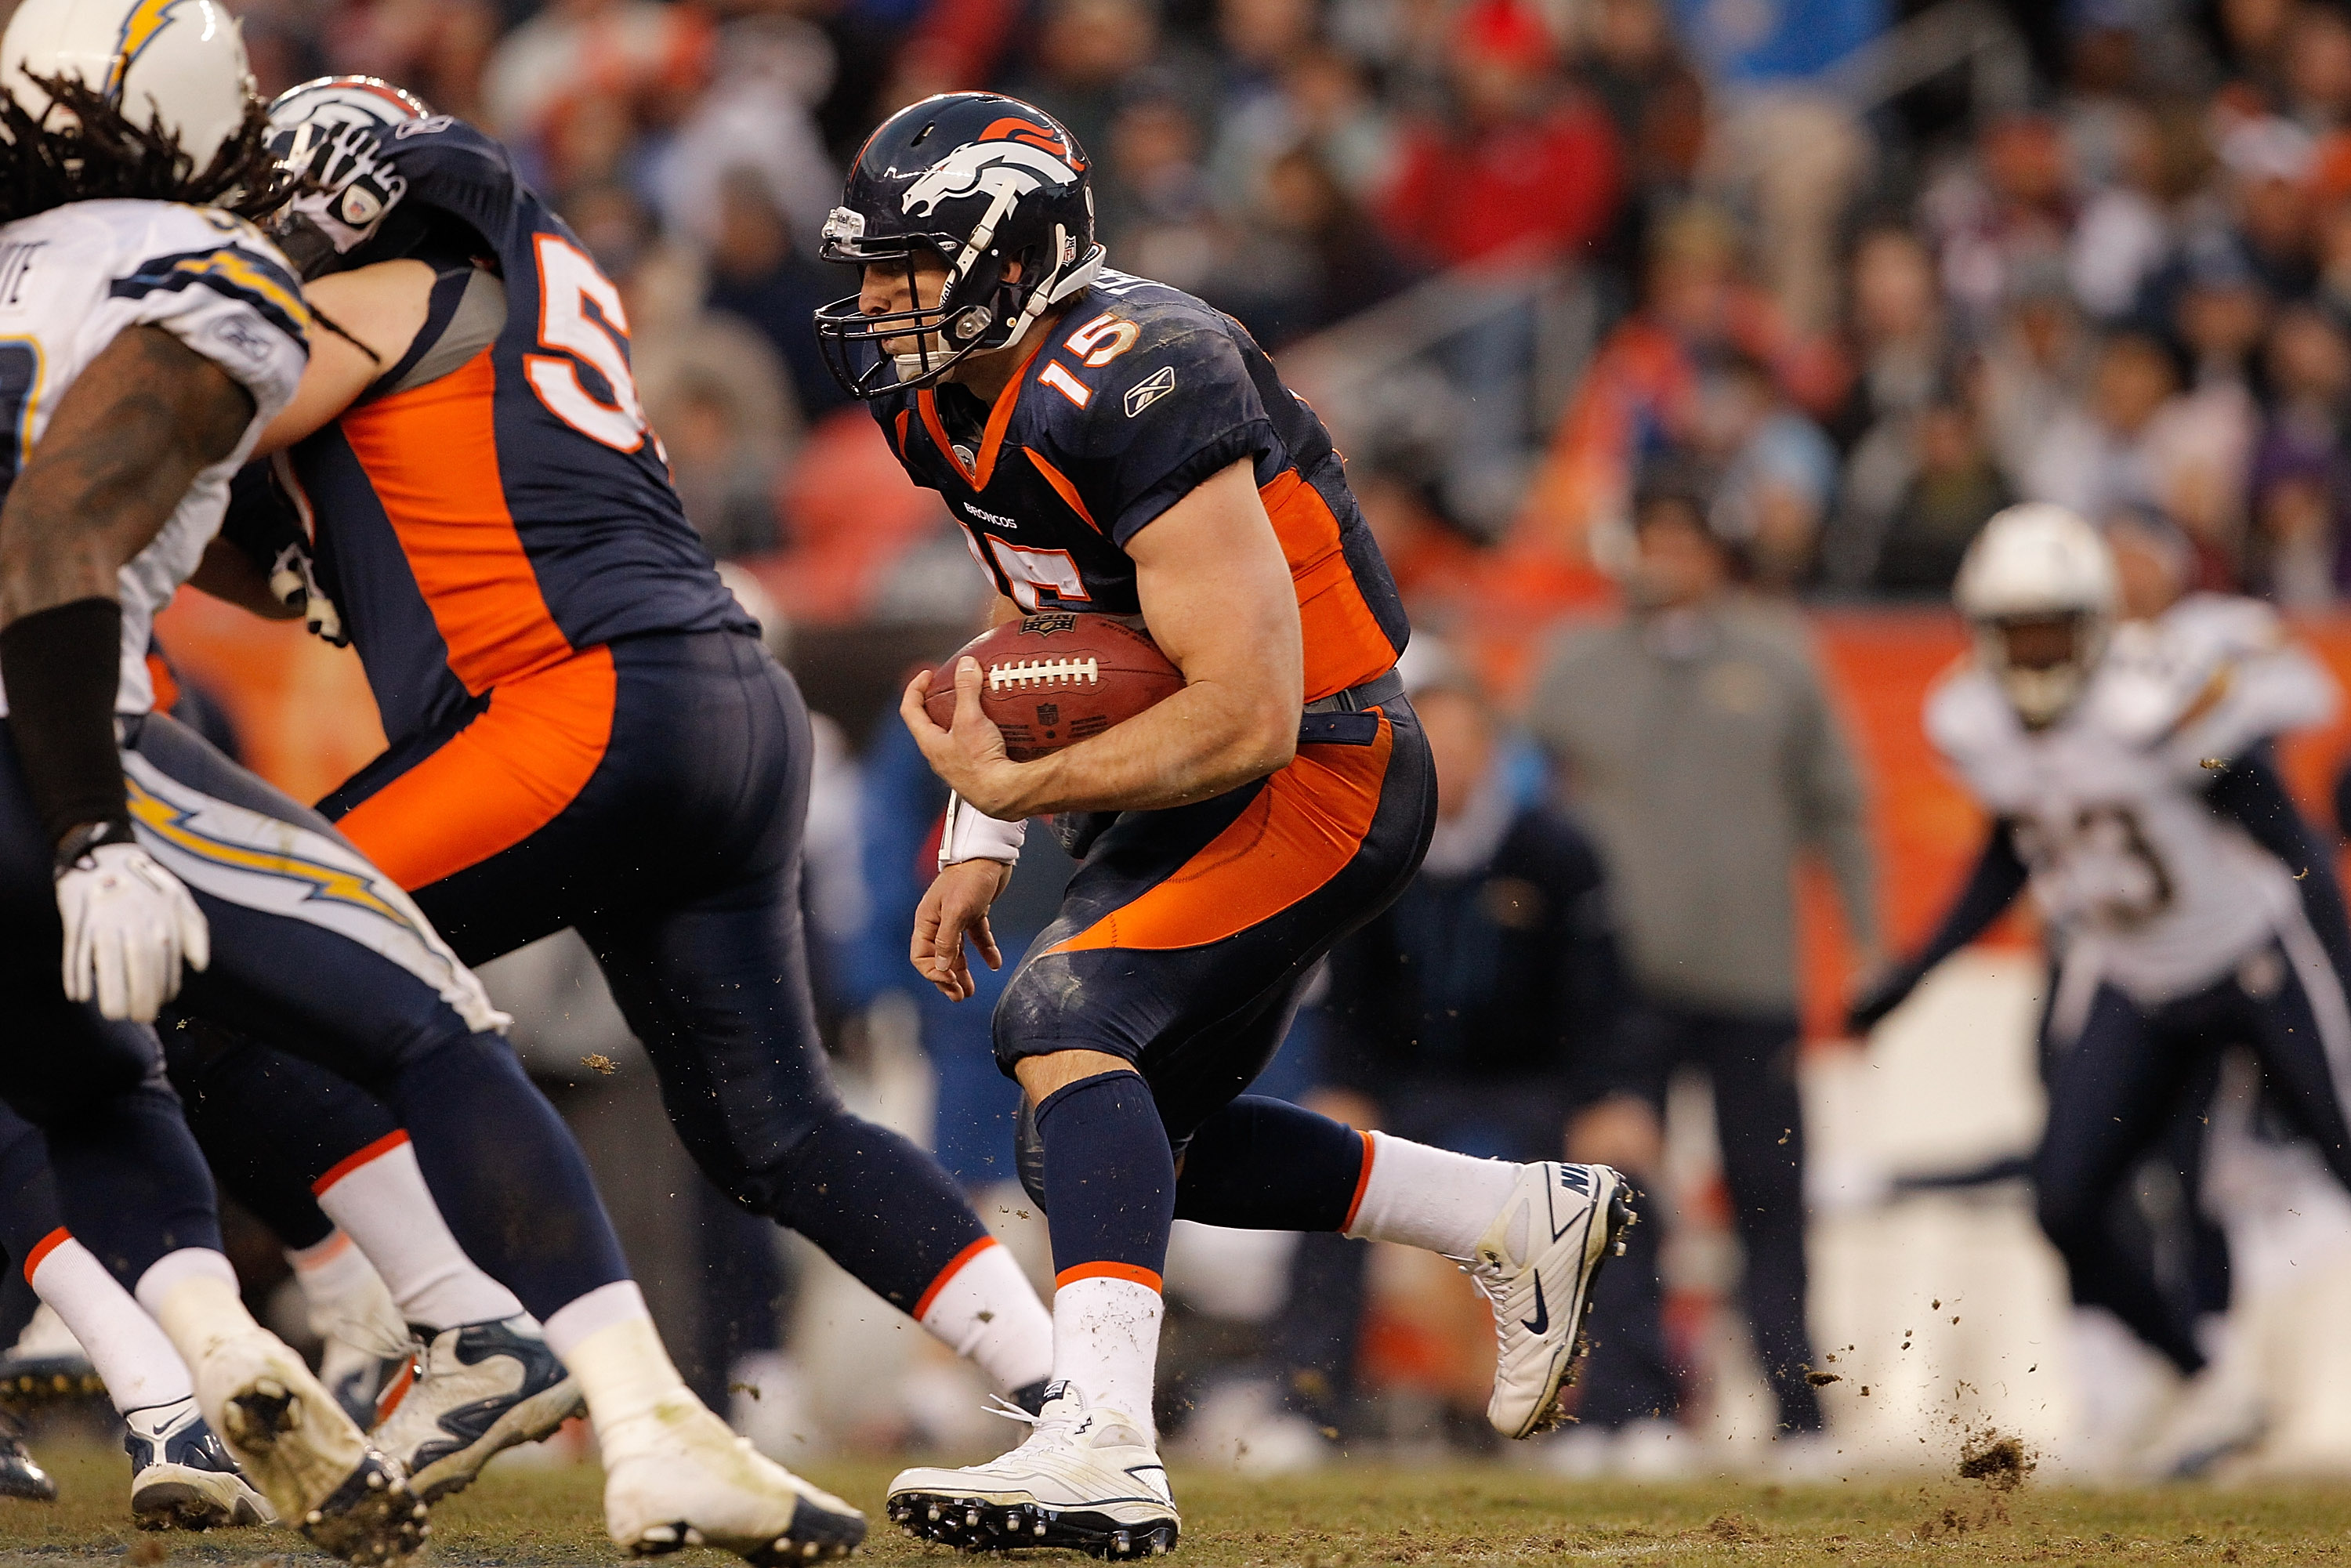 DENVER, CO - JANUARY 2:  Quarterback Tim Tebow #15 of the Denver Broncos looks for a hole in the line of the San Diego Chargers' defense during the fourth quarter at INVESCO Field at Mile High on January 2, 2011 in Denver, Colorado. (Photo by Justin Edmon